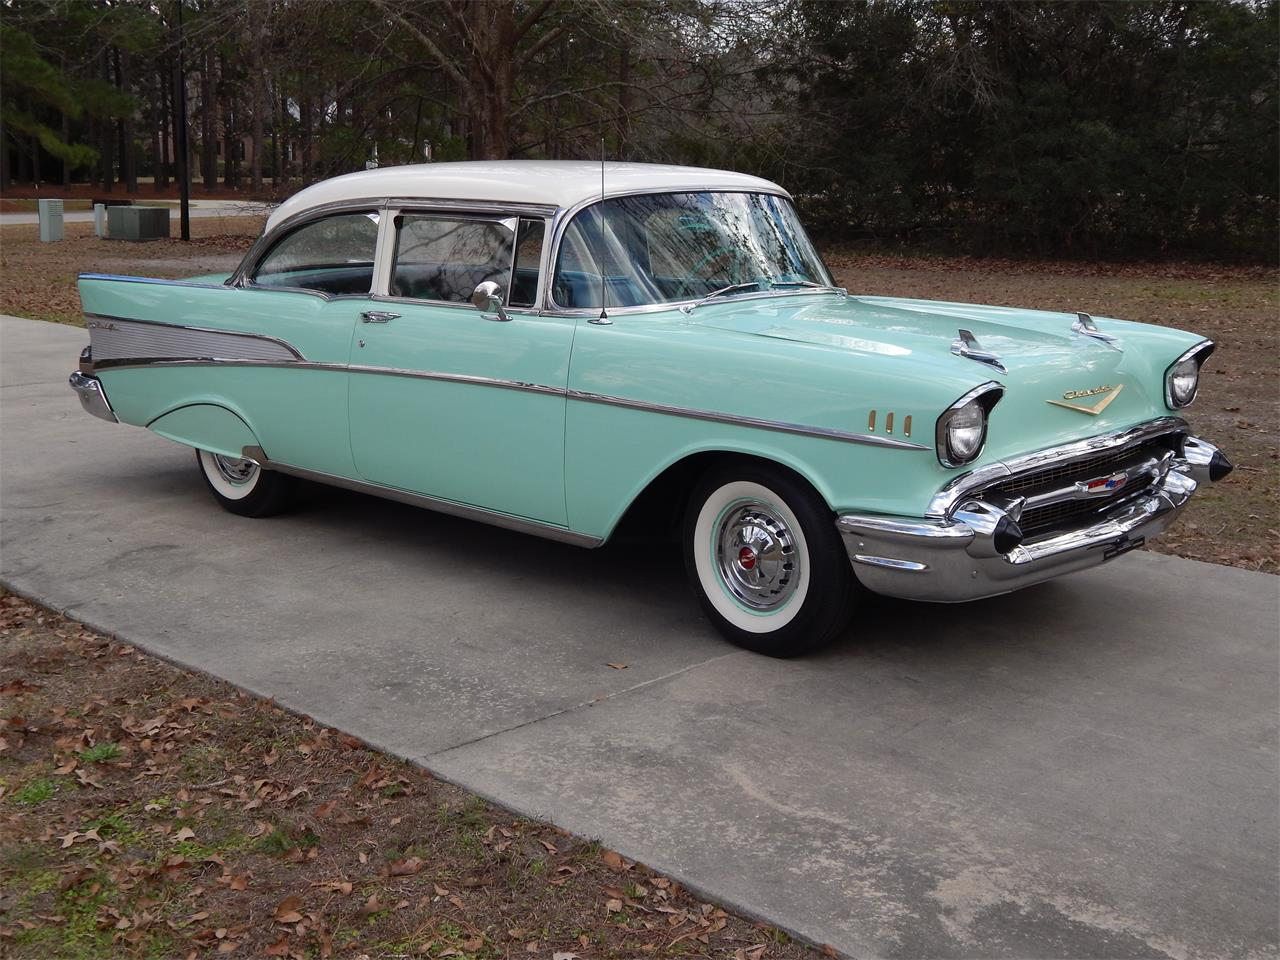 1957 Chevrolet Bel Air for sale in Online, Online Auction – photo 6